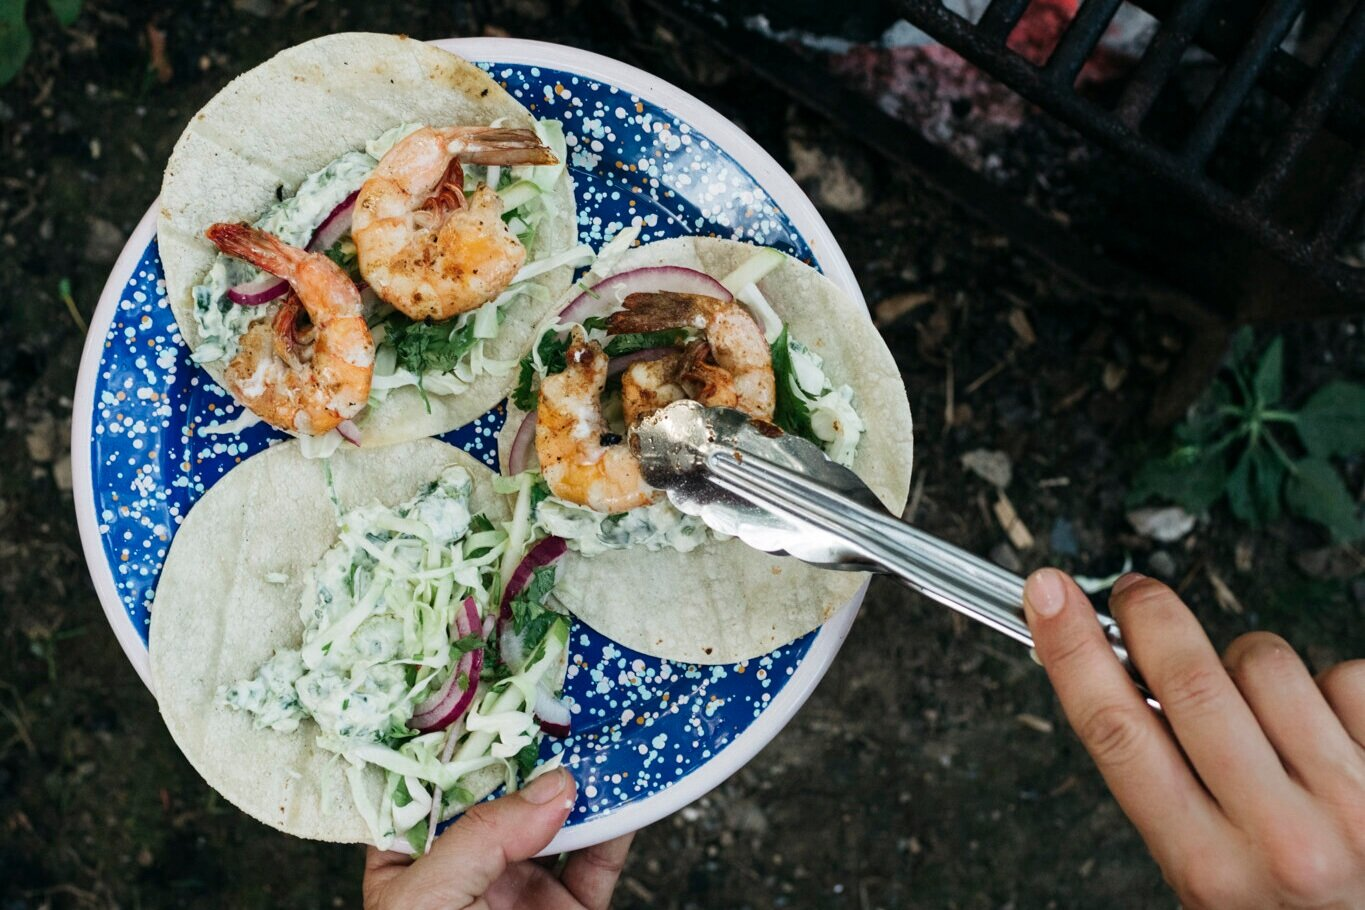 Whole Shrimp Tacos with Avocado and Cilantro Sauce and Pickled Apple and Onion